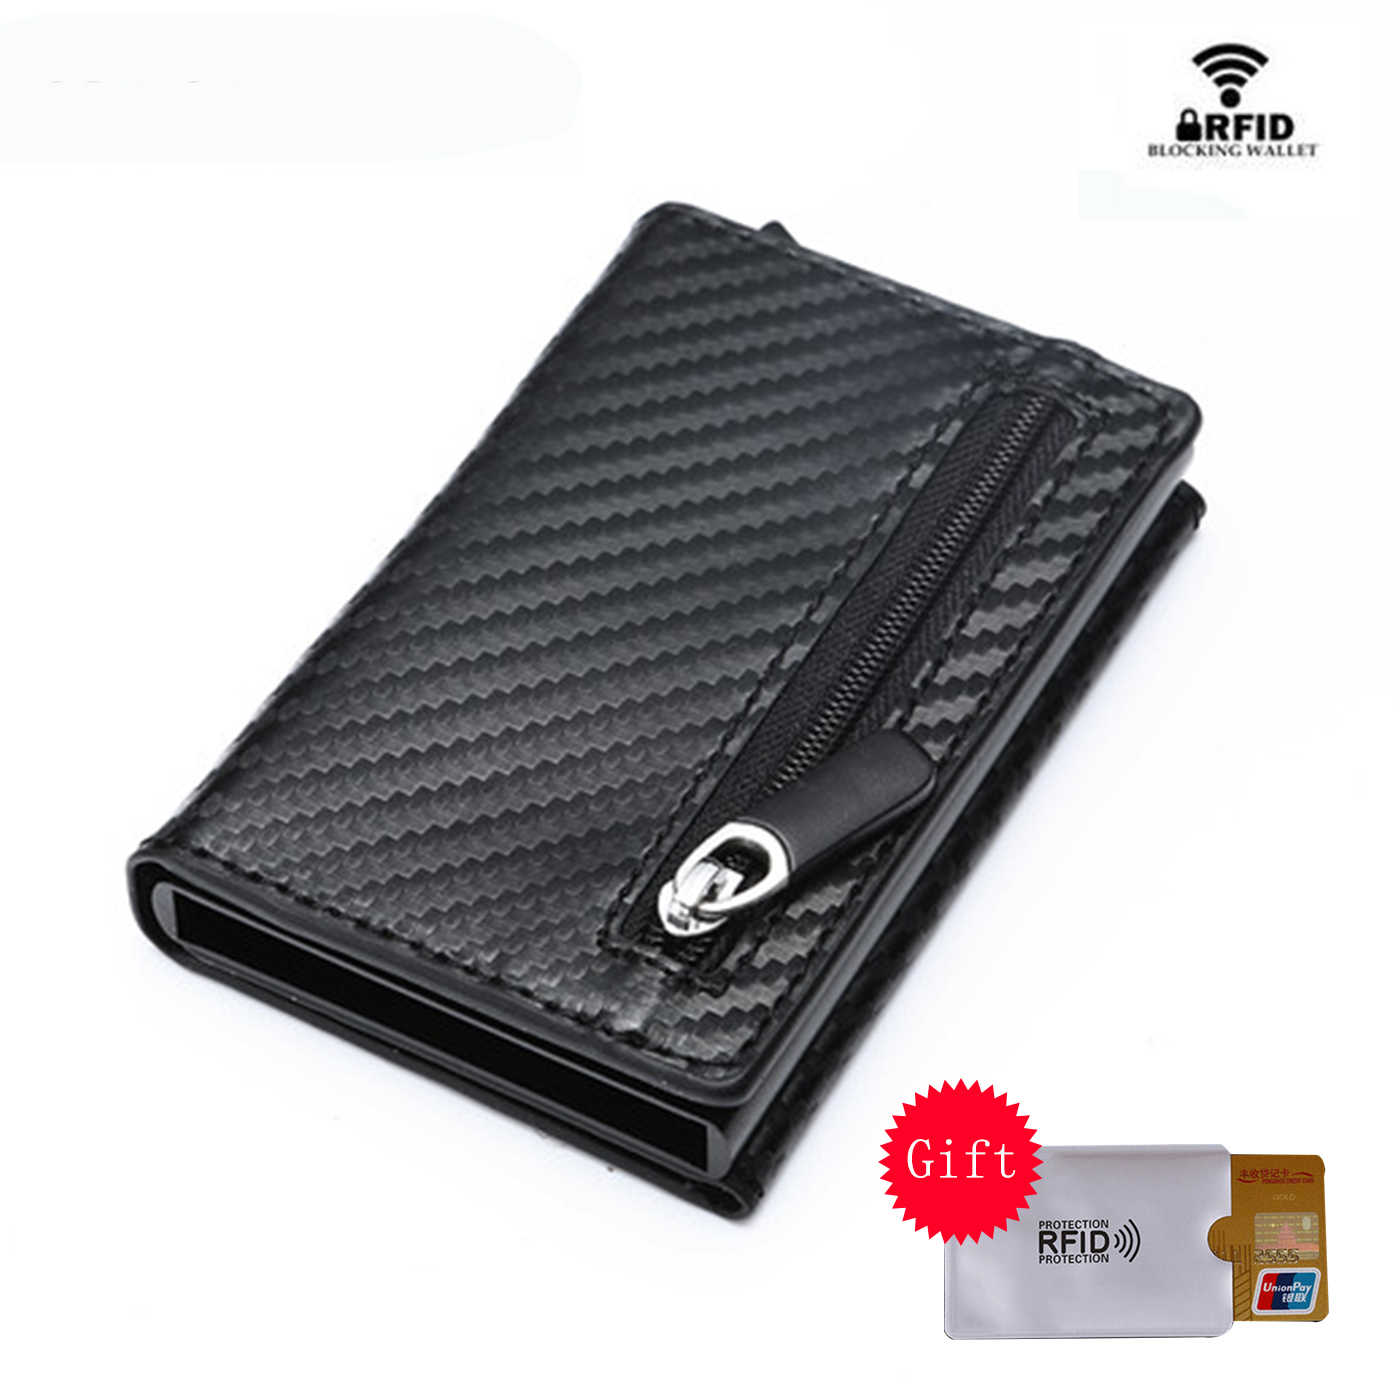 BYCOBECY Coin Purse 2019 New Aluminum Box Card Wallet RFID PU Leather Card Holder Pop Up Coin Purse Magnet Carbon Fiber